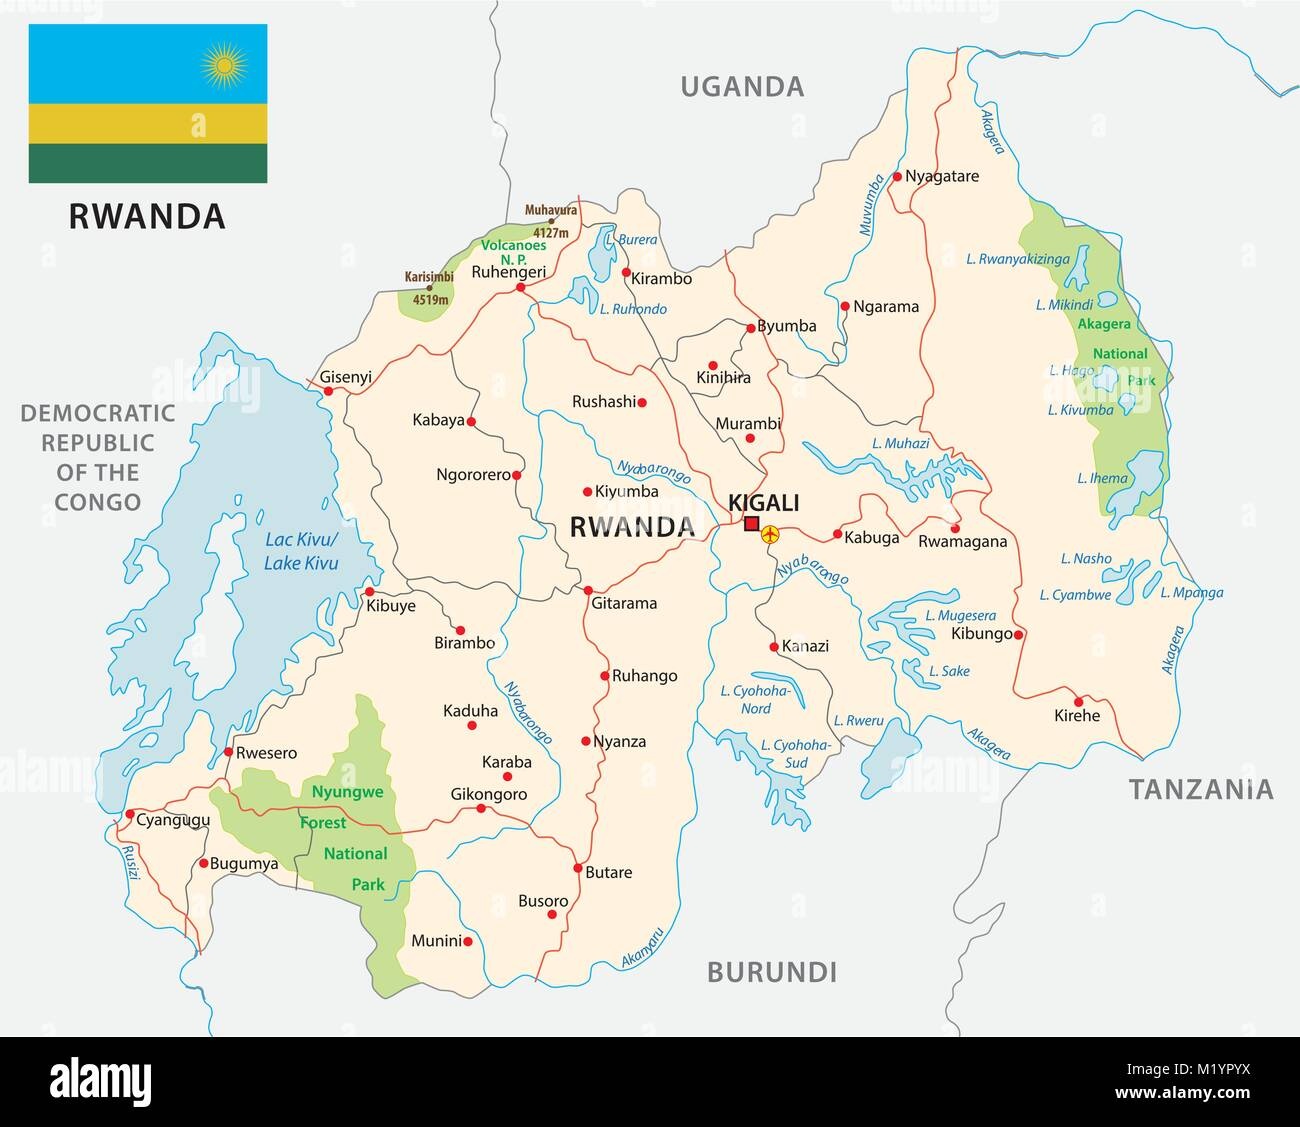 rwanda road and national park vector map with flag - Stock Vector